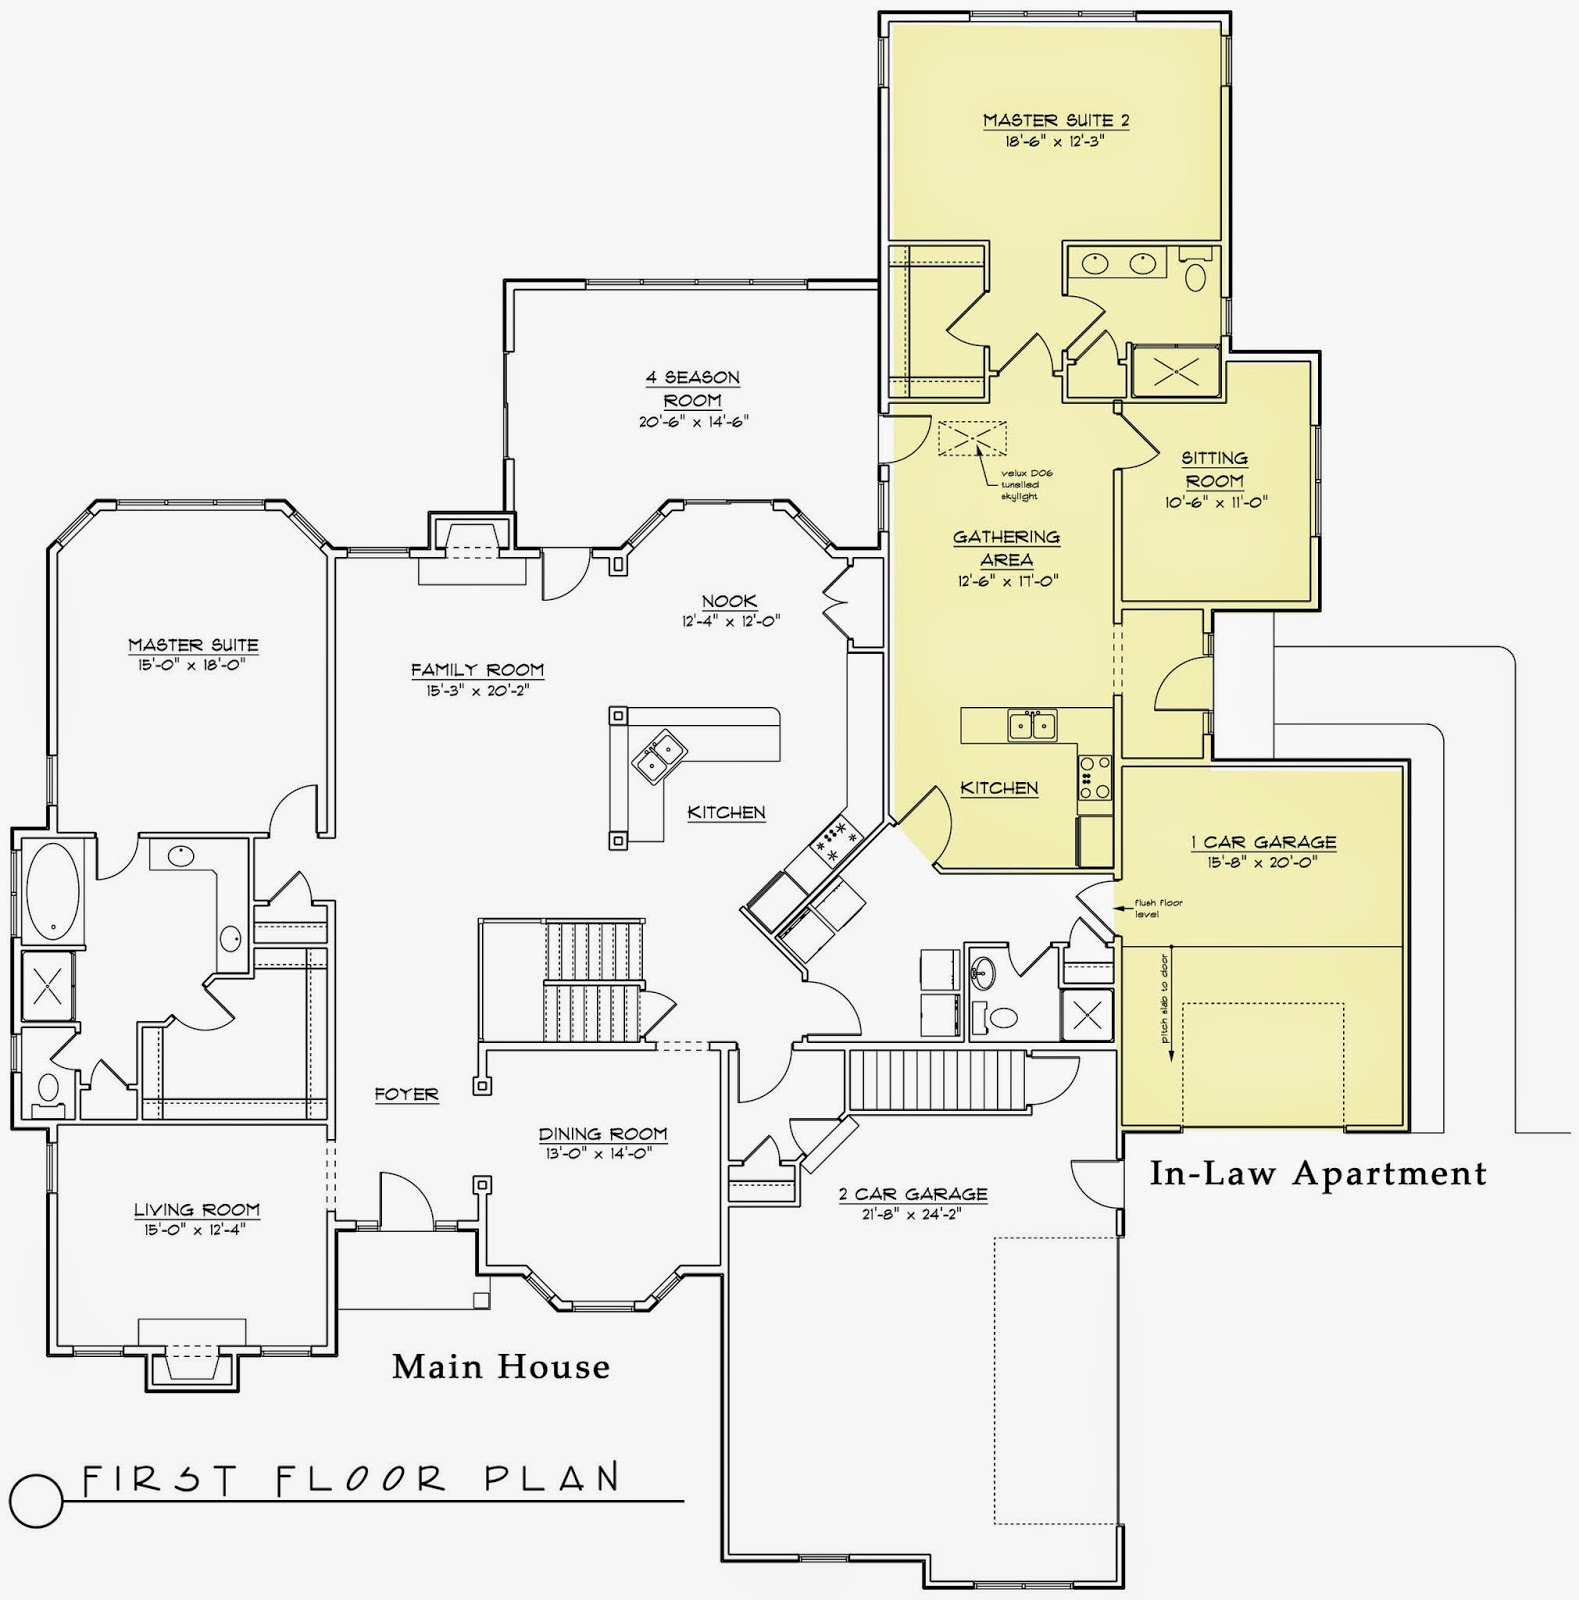 Hodorowski homes rising trend for in law apartments for In law apartment plans